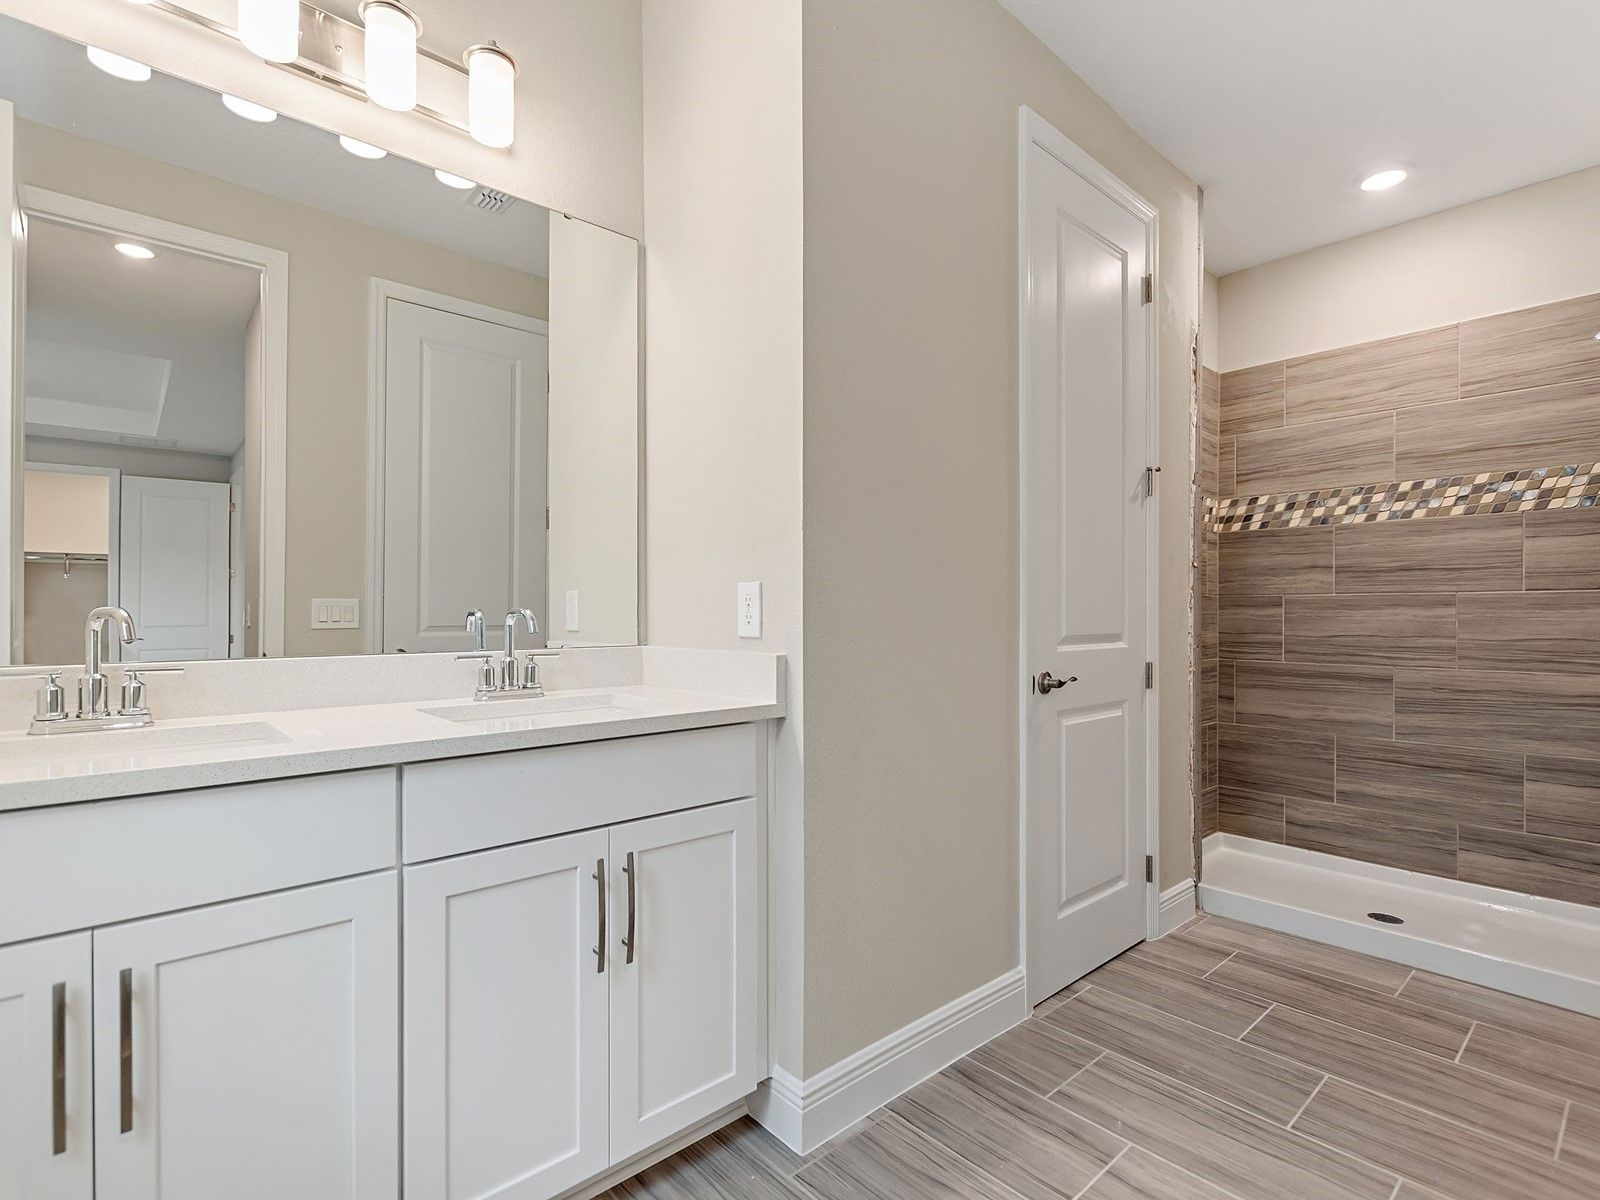 Bathroom featured in the Belvedere By Meritage Homes in Orlando, FL